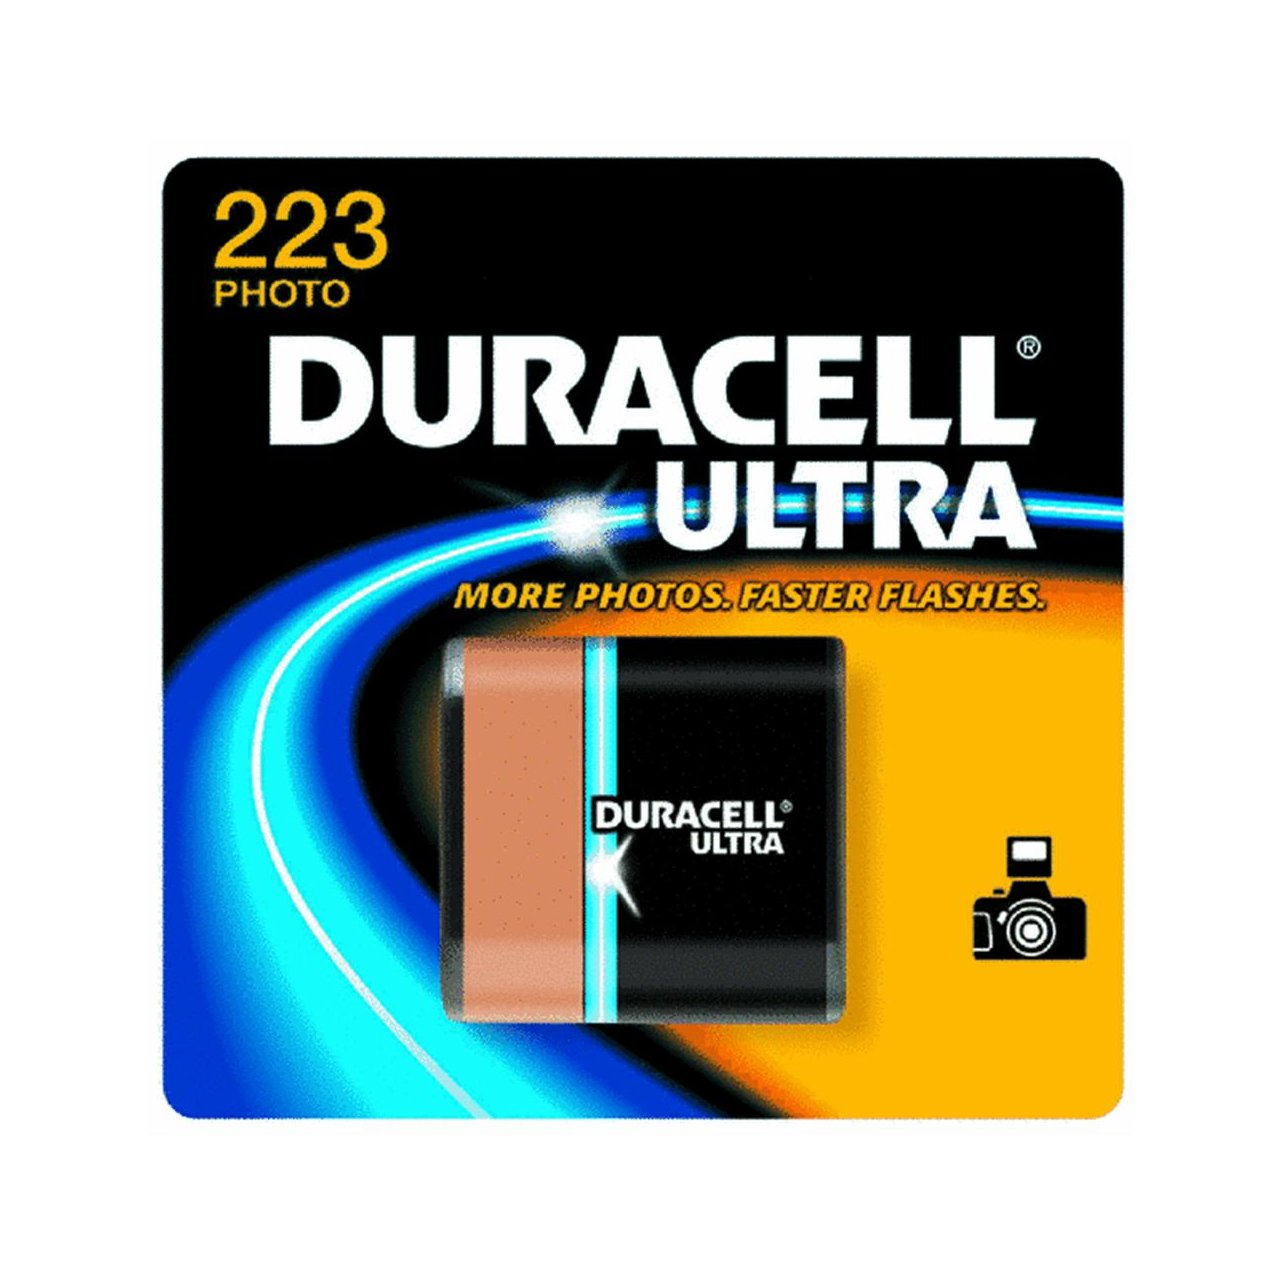 Duracell DL223A Photo Lithium Battery Replacement